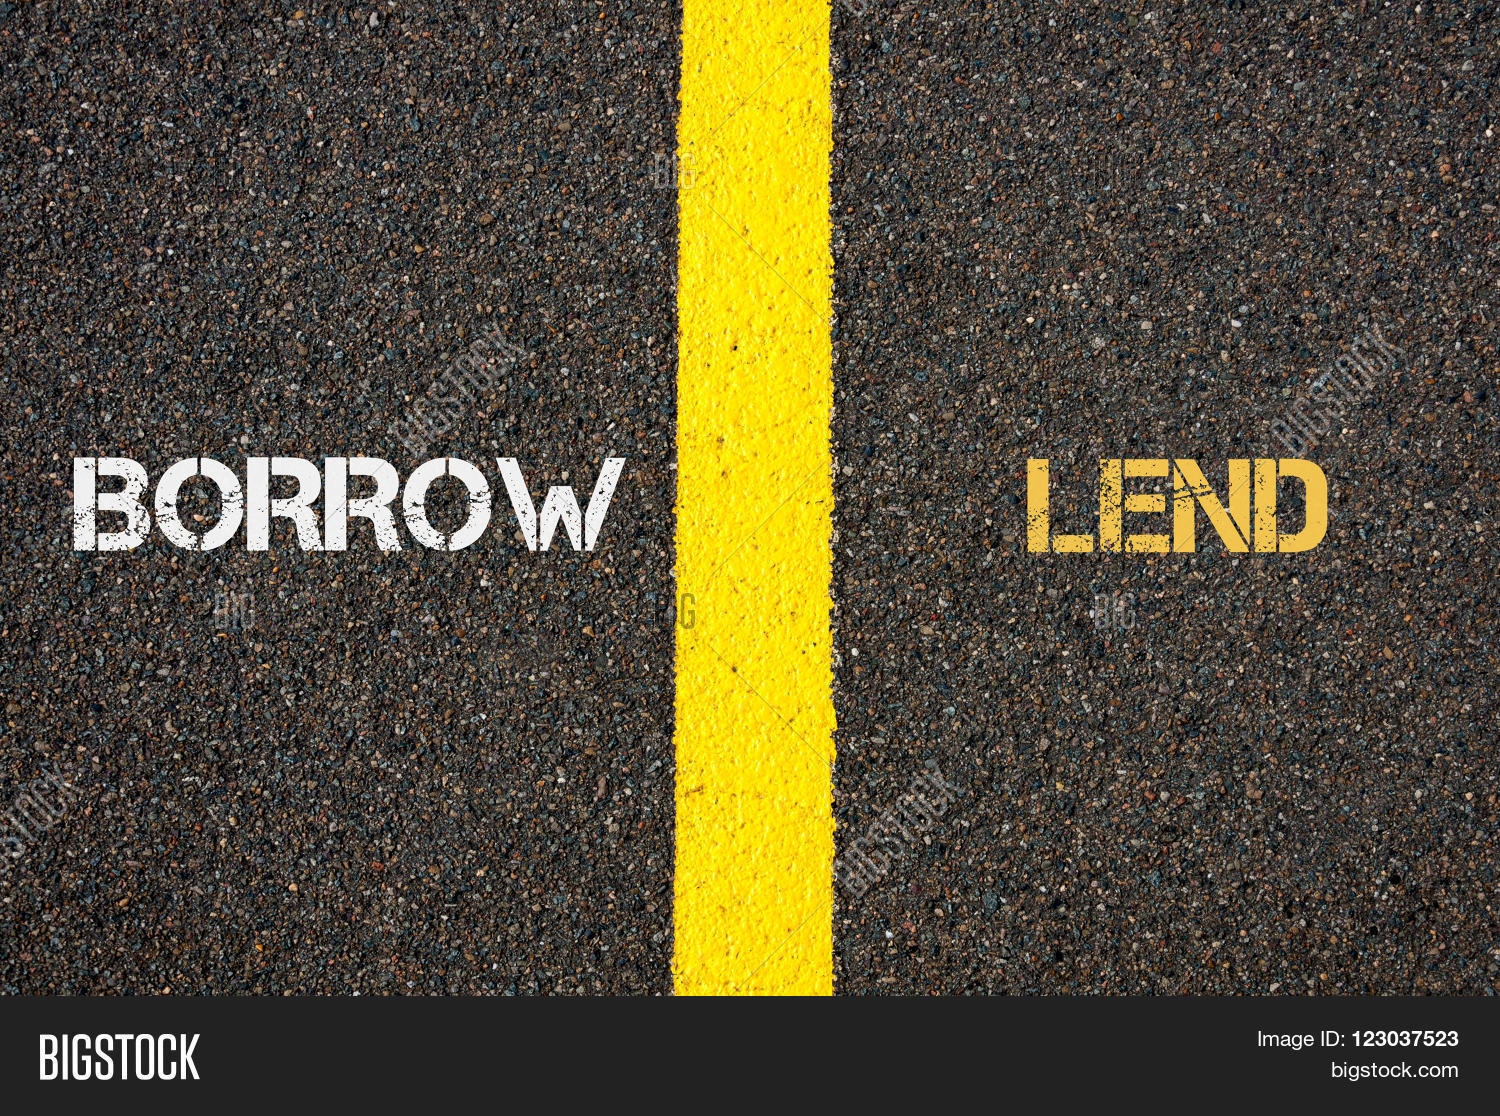 Antonym concept borrow versus lend image photo bigstock antonym concept of borrow versus lend written over tarmac road marking yellow paint separating line biocorpaavc